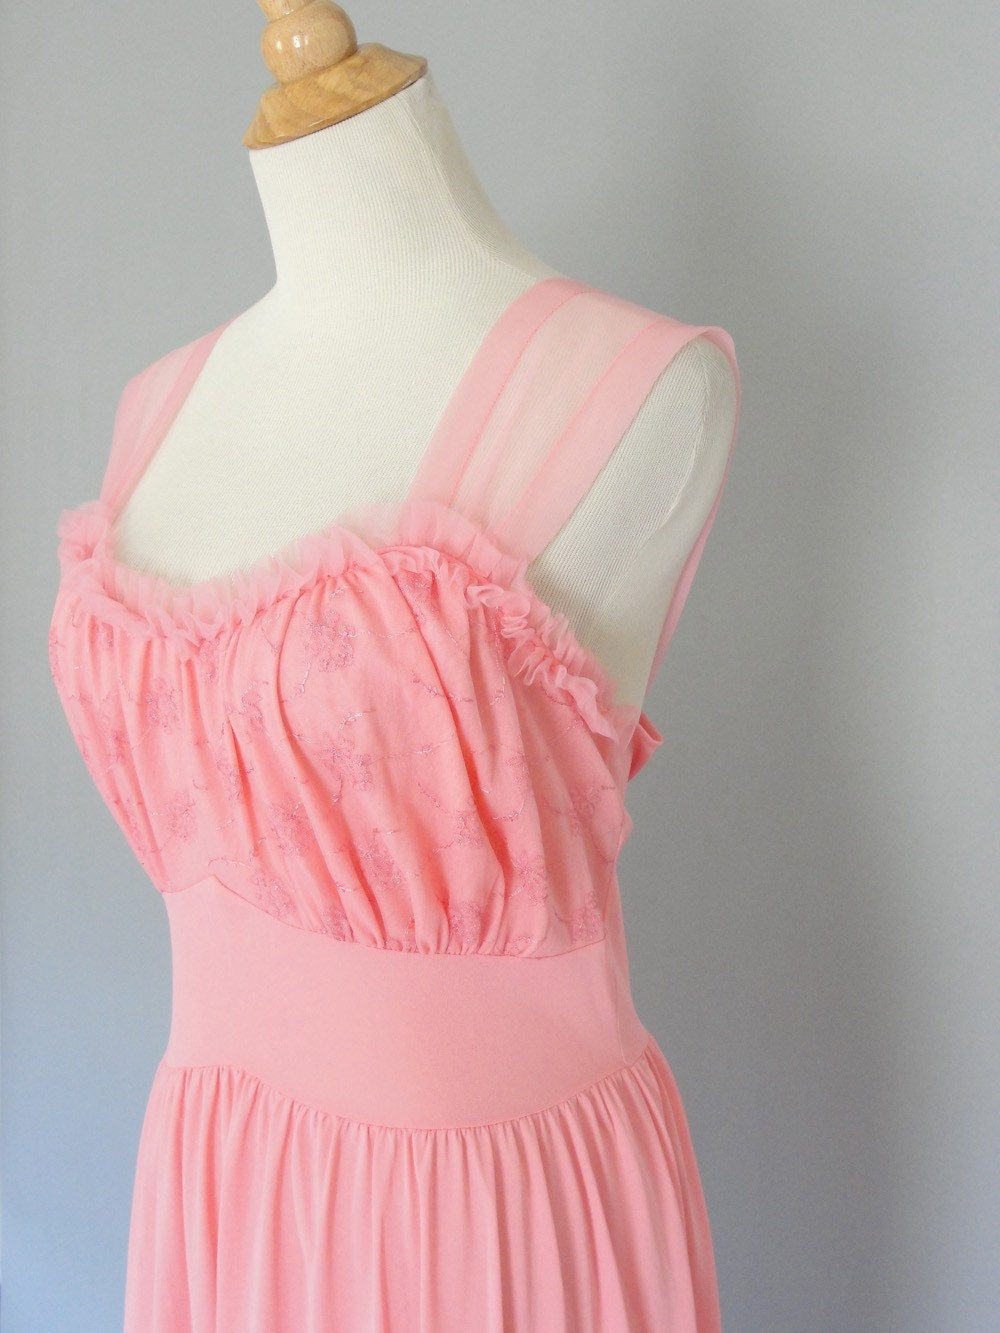 Vintage 1950s Watermelon Pink CHARMODE Nightgown